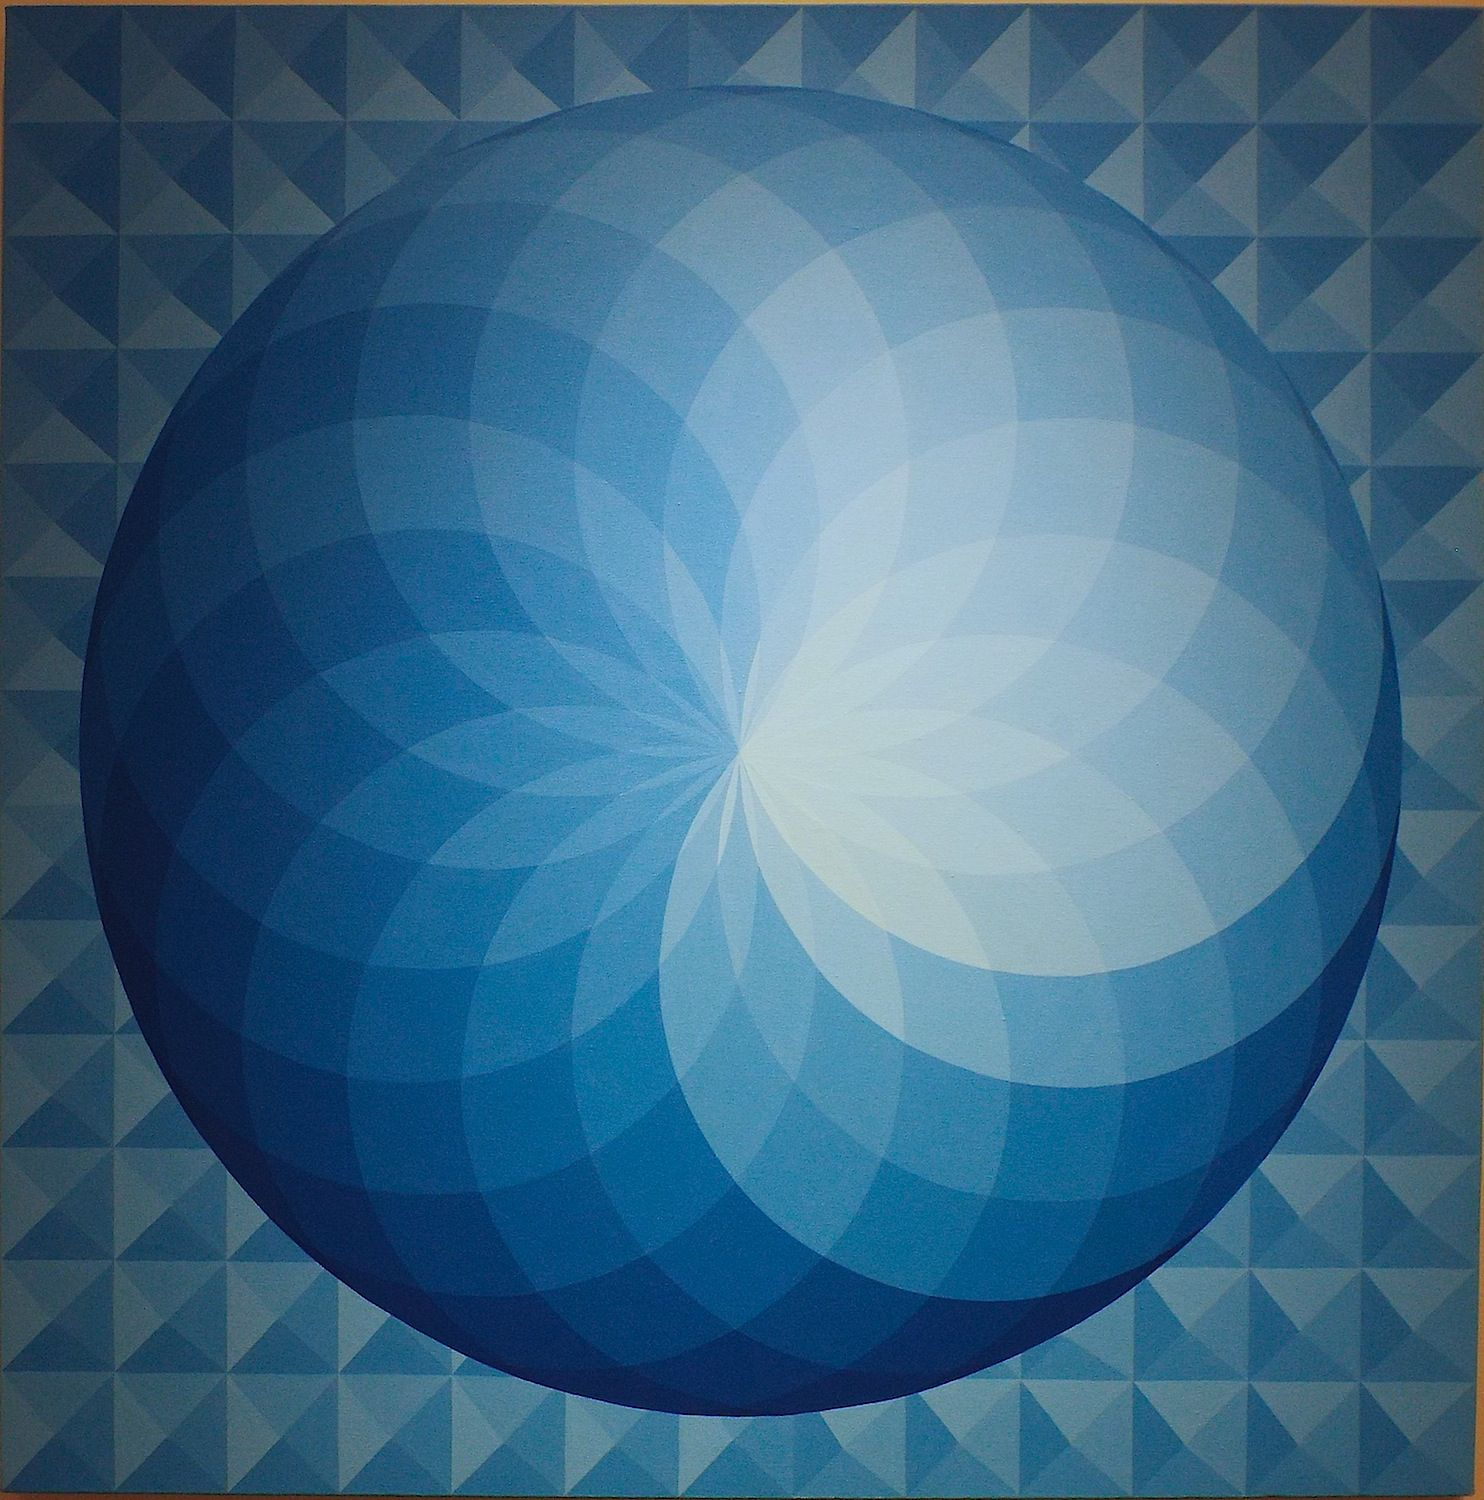 Optical Art Movement: A Visual Guide to Optical Art aka Op Art